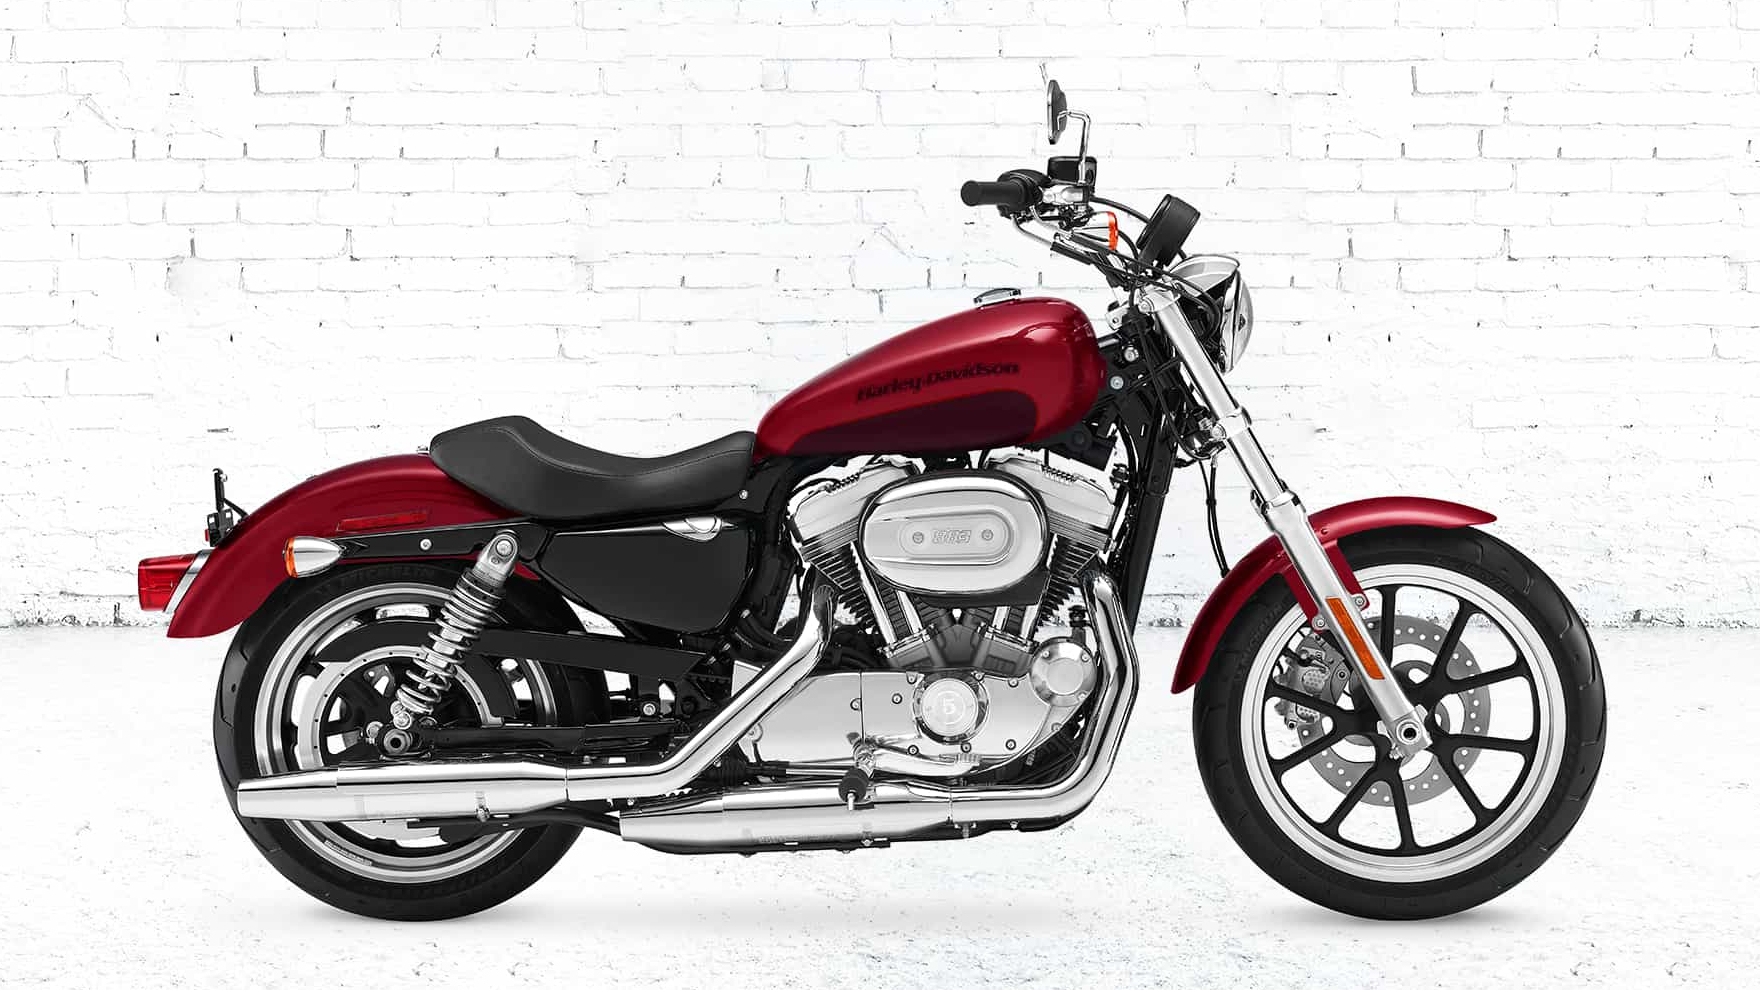 2015 - 2017 Harley-Davidson SuperLow Review - Top Speed. »